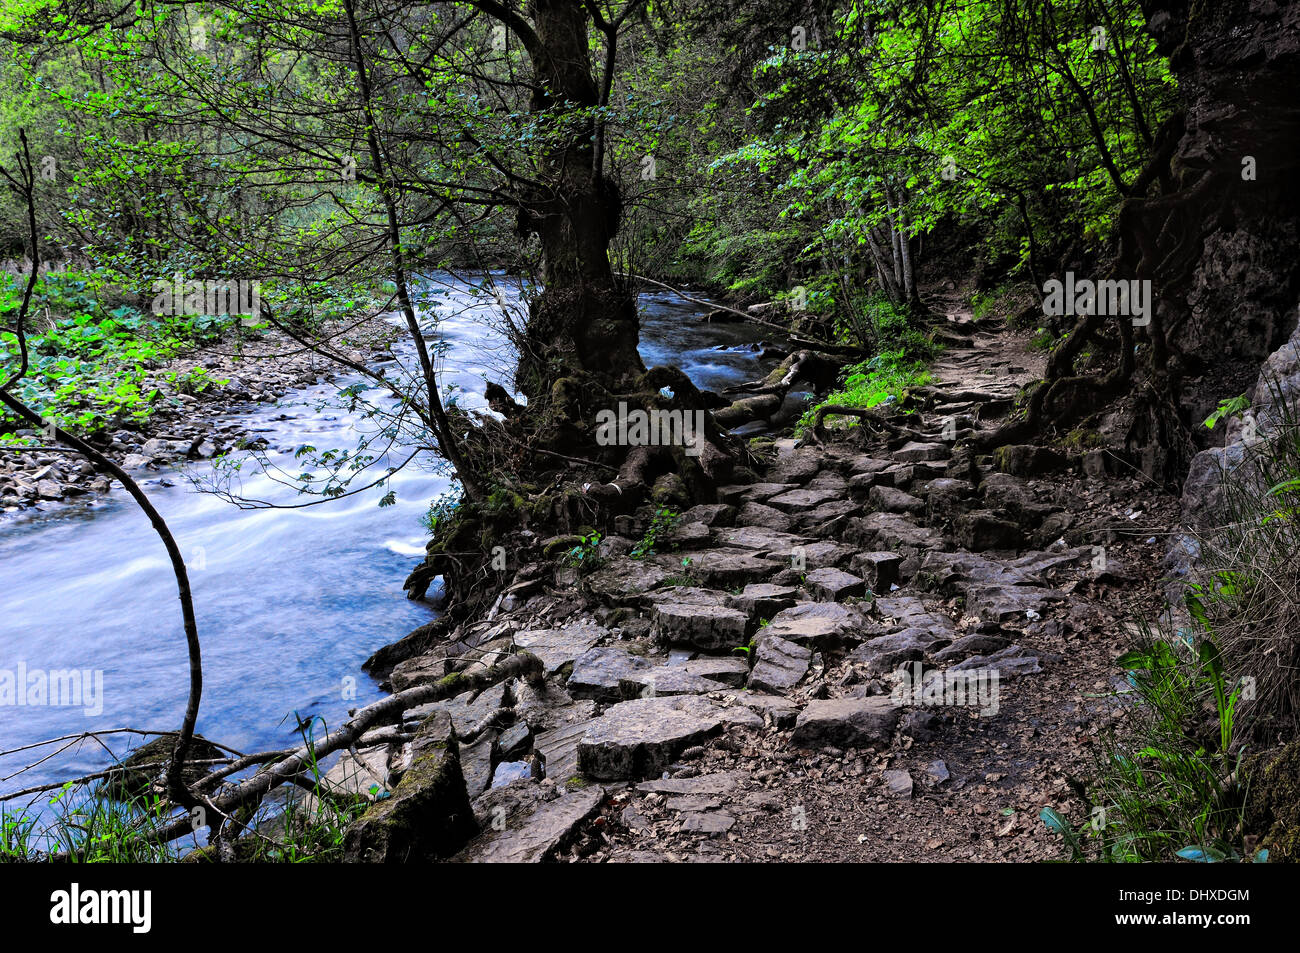 Trail Wutachschlucht Black Forest of Germany, - Stock Image